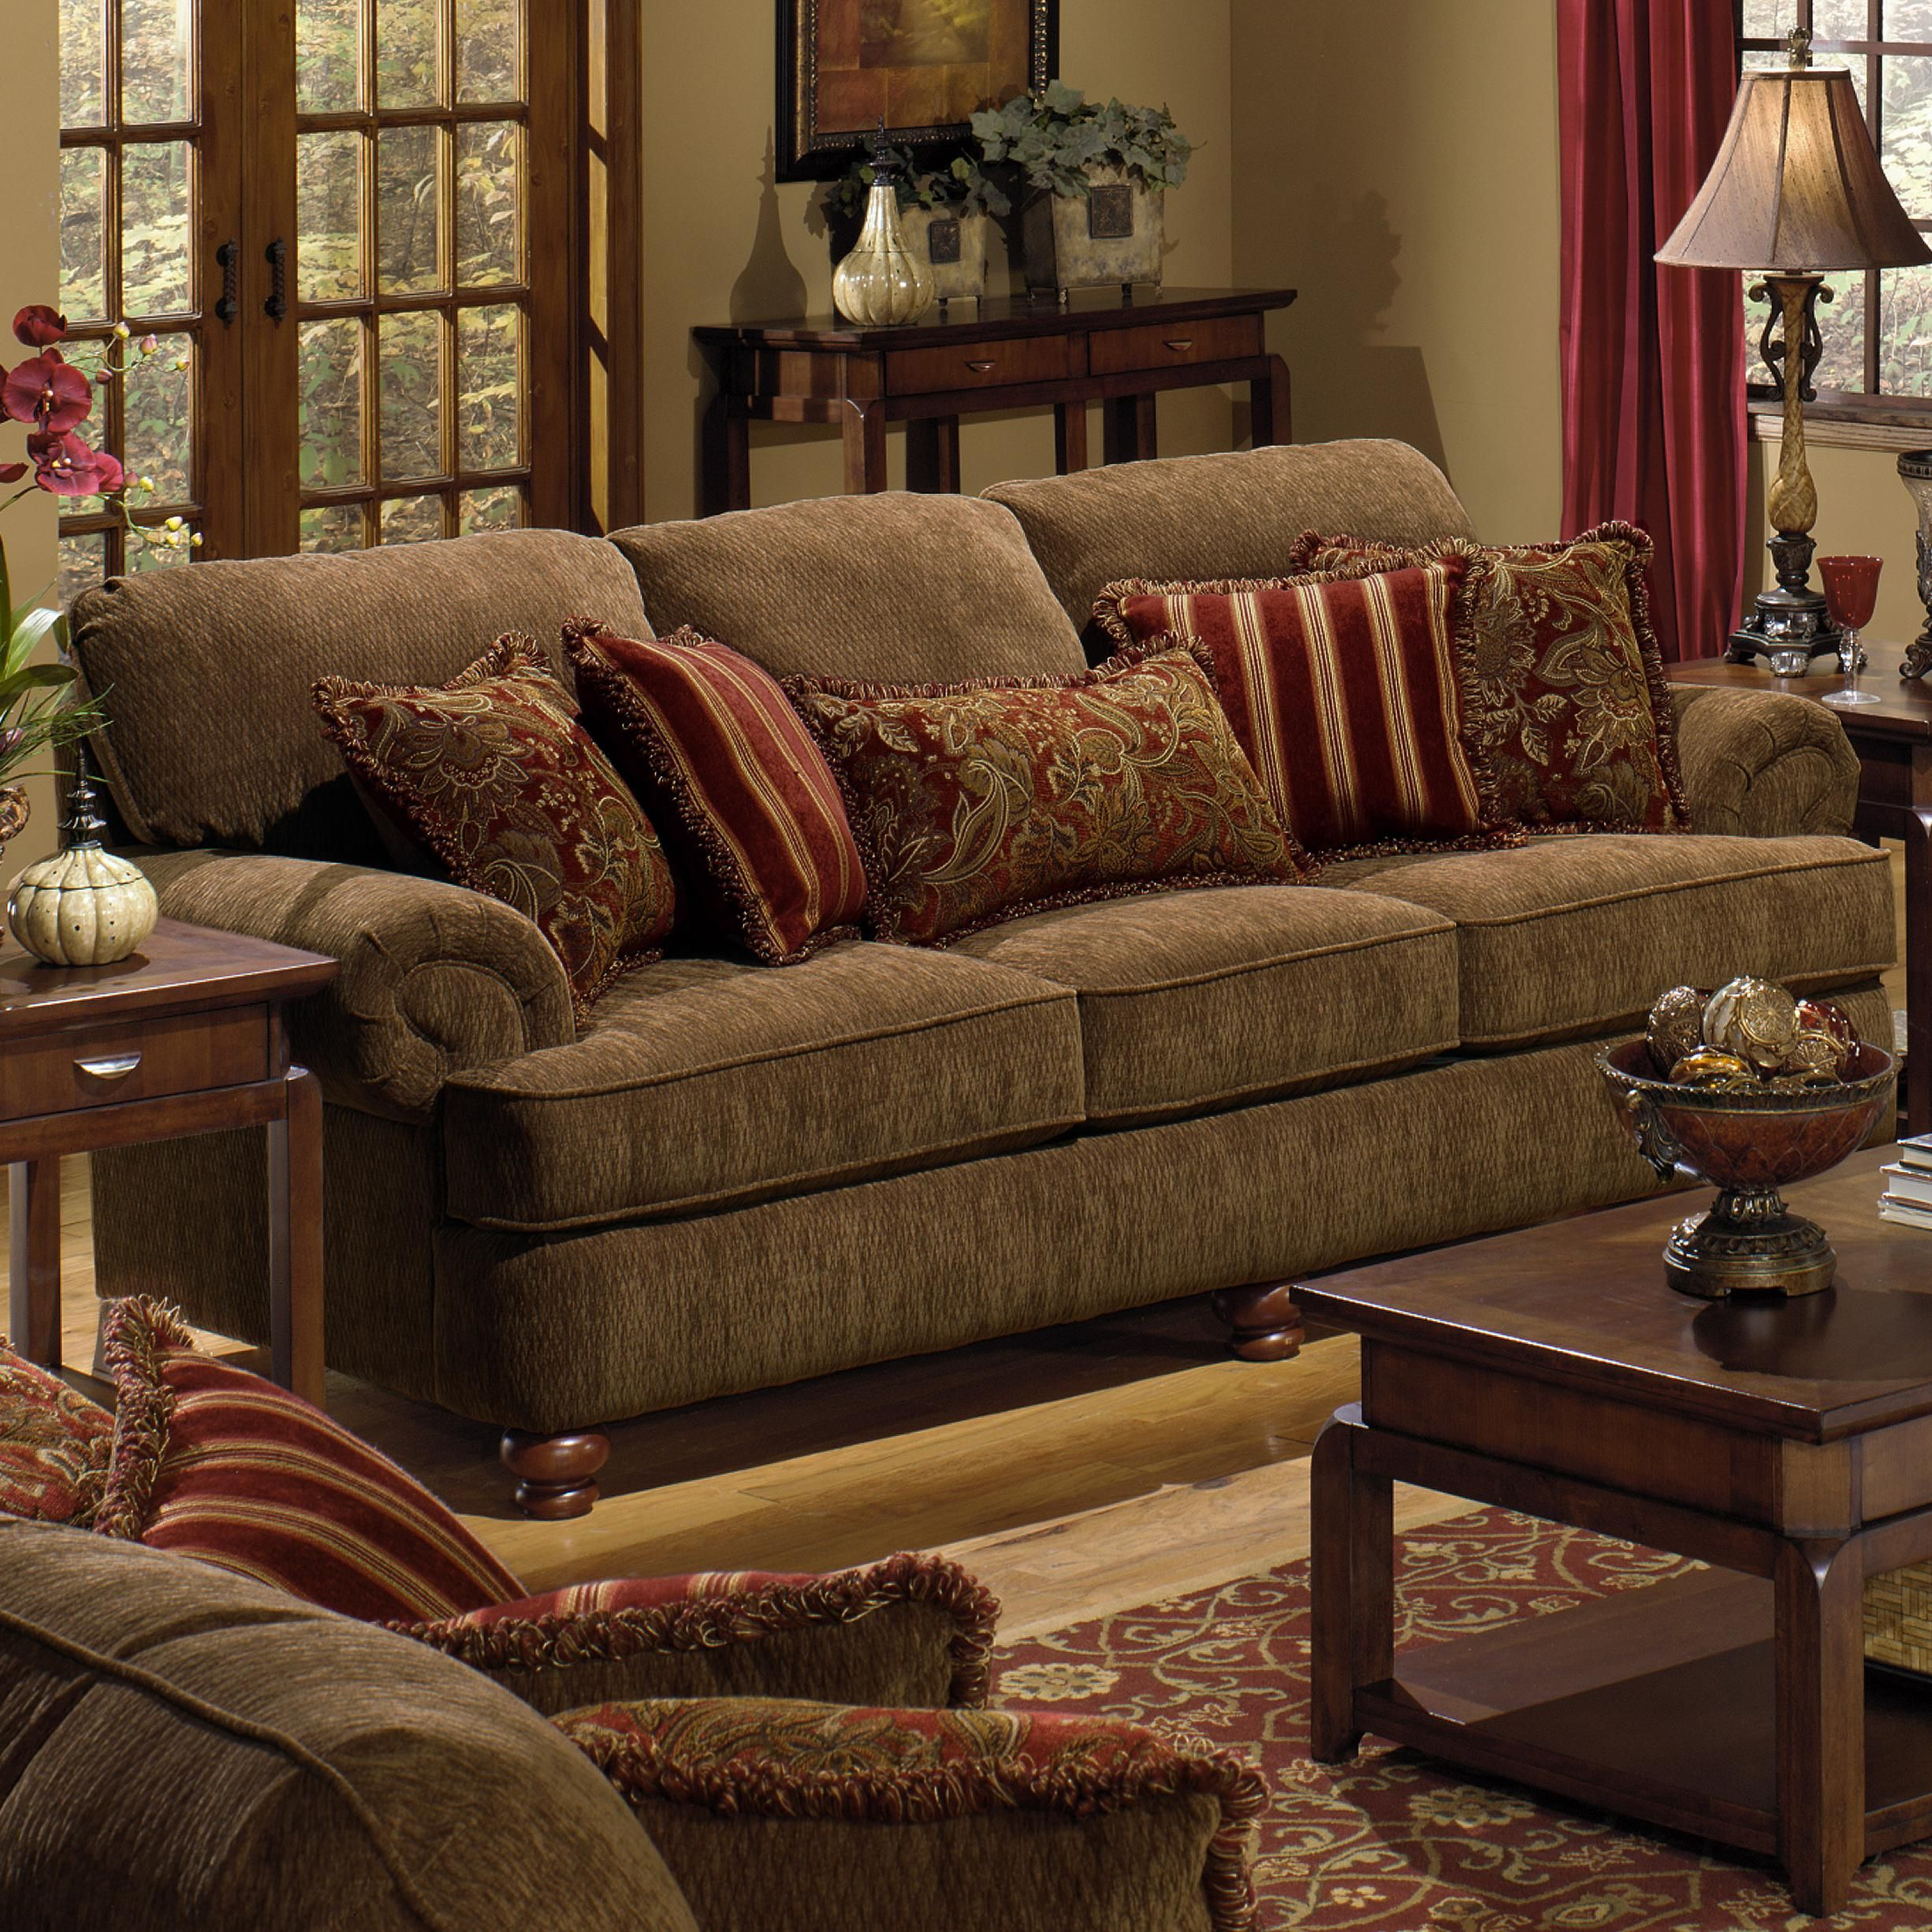 jackson sofa west elm express lier belmont with rolled arms and decorative pillows by ...